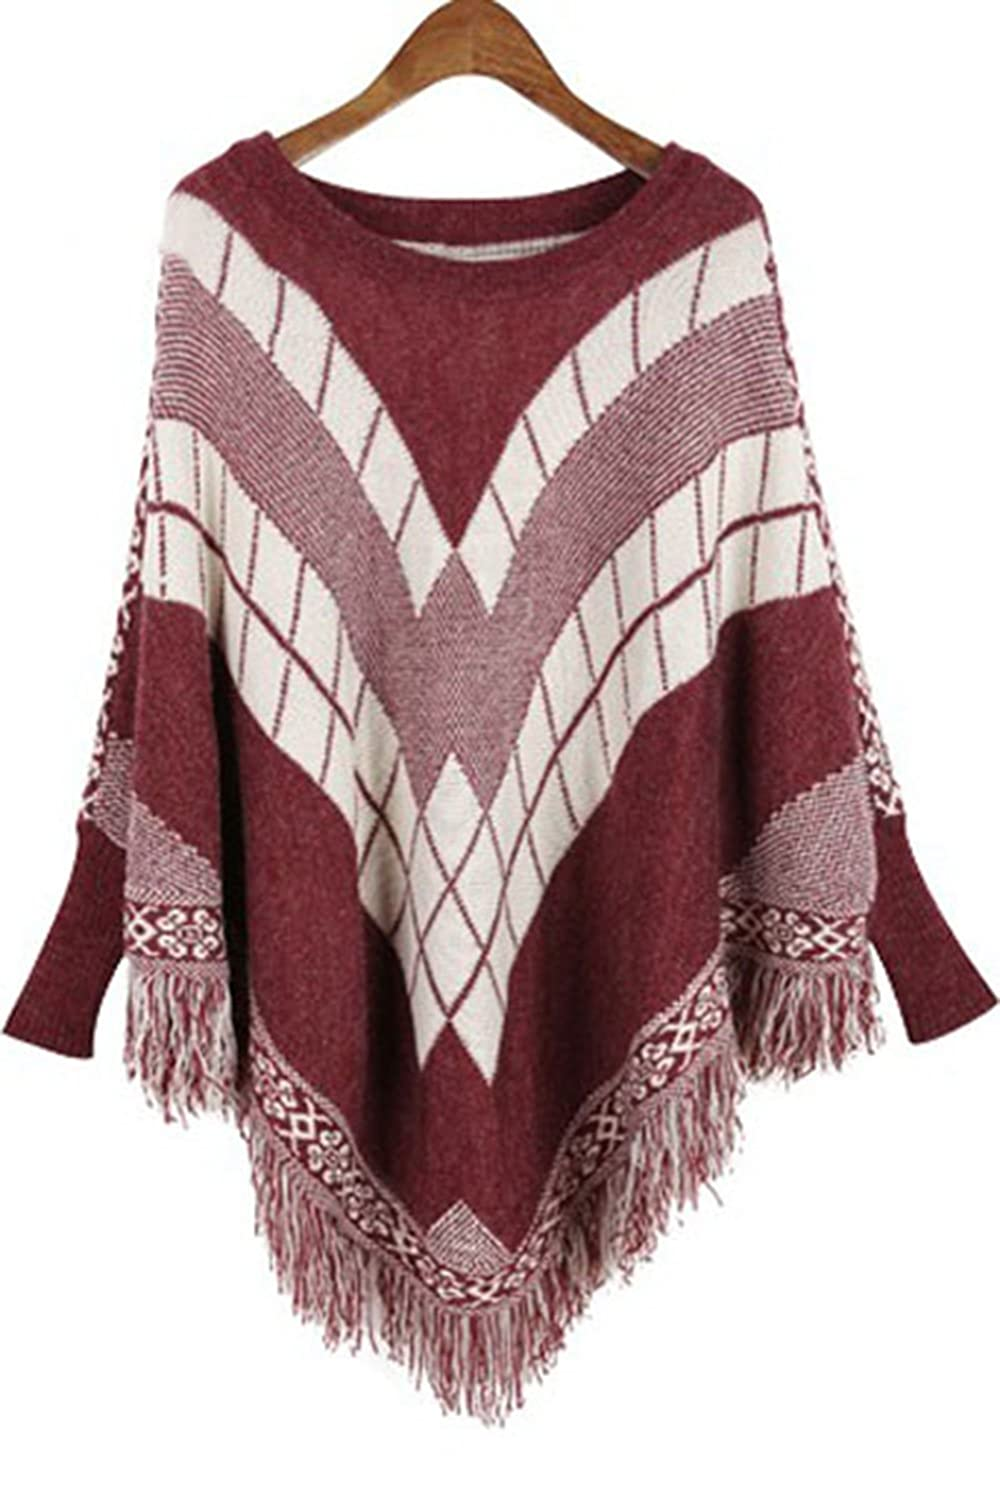 iecool Women's Light Pullover Batwing Patterned Poncho Sweater